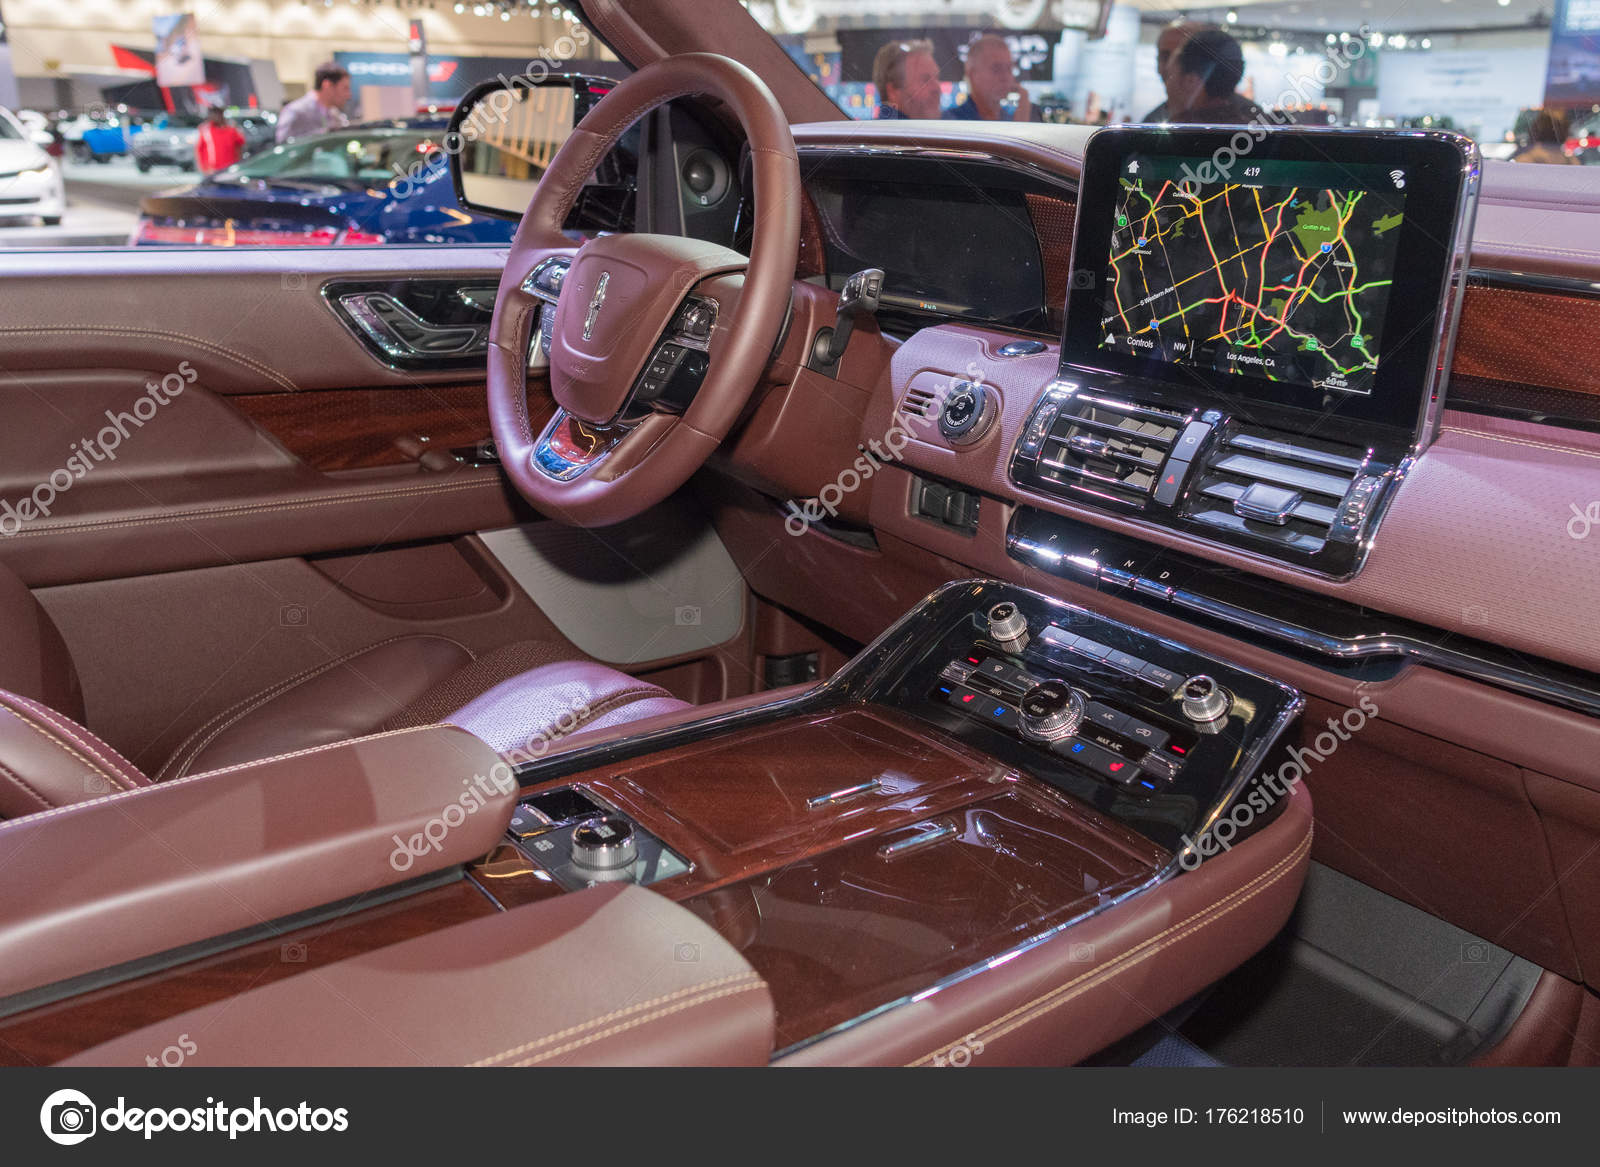 Lincoln Navigator Interior On Display During LA Auto Show U2014 Stock Photo Images